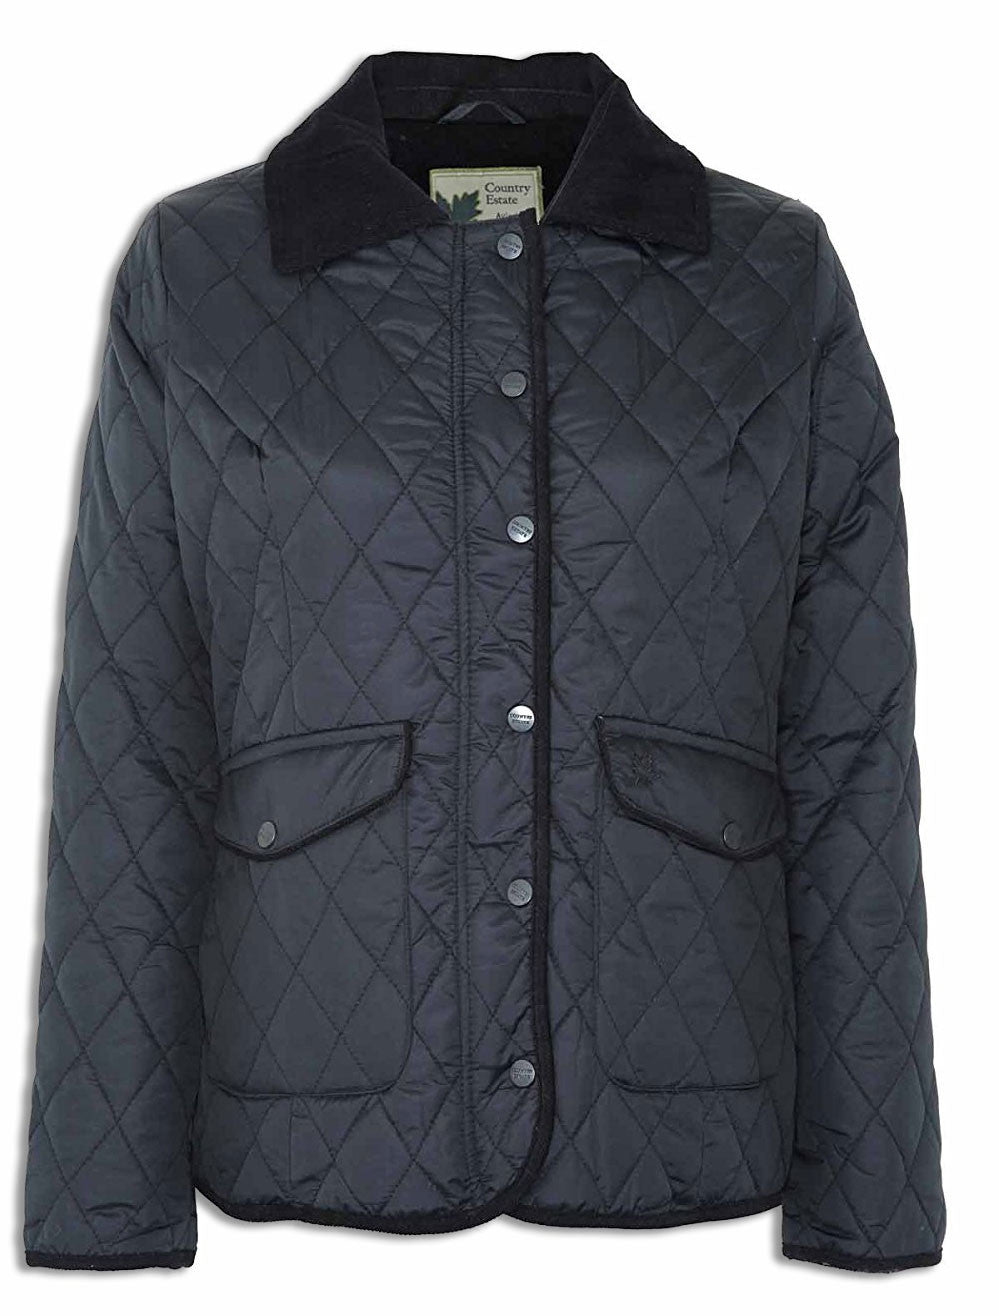 aylesbury ladies Quilted Jacket from Champion country estate clothing